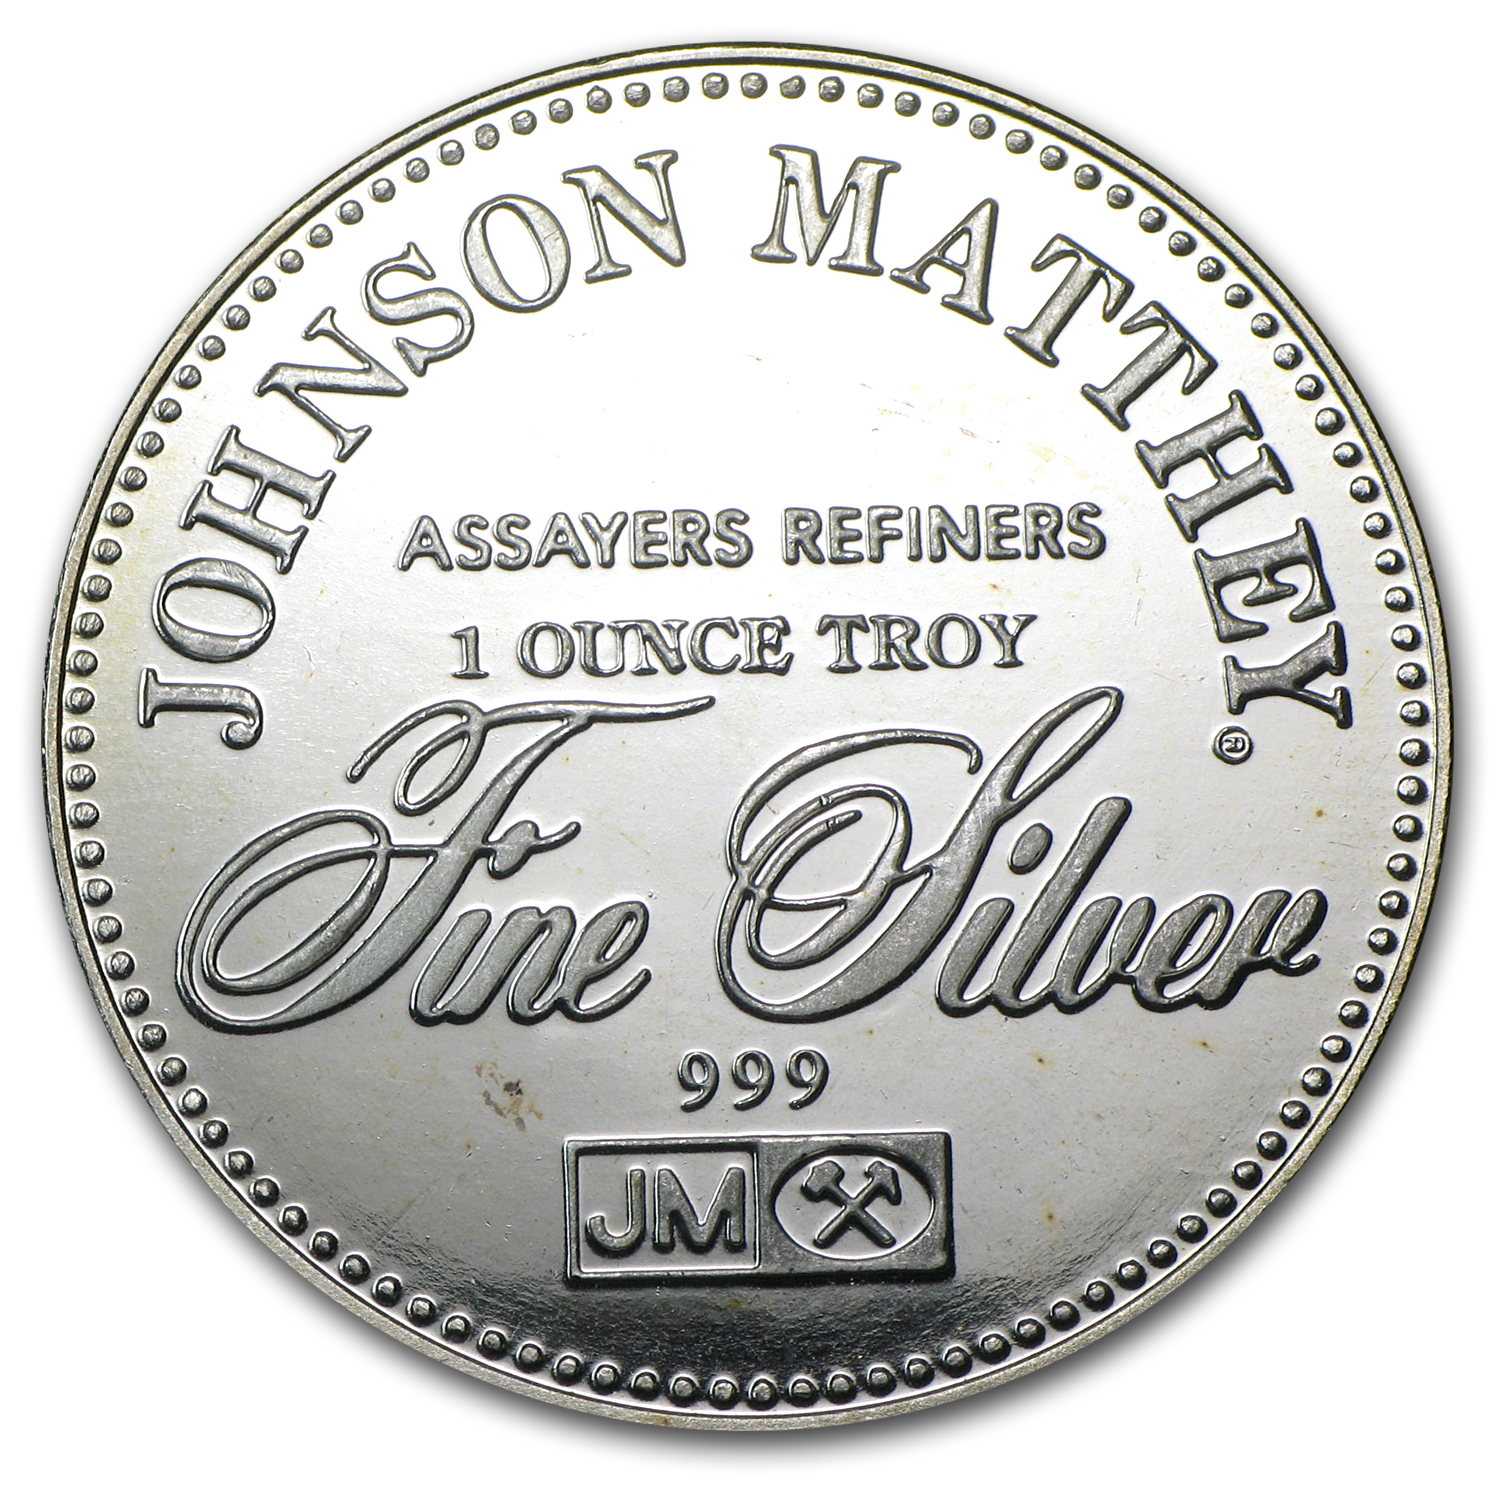 1 oz Silver Rounds - Johnson Matthey (Right to Trial by Jury)